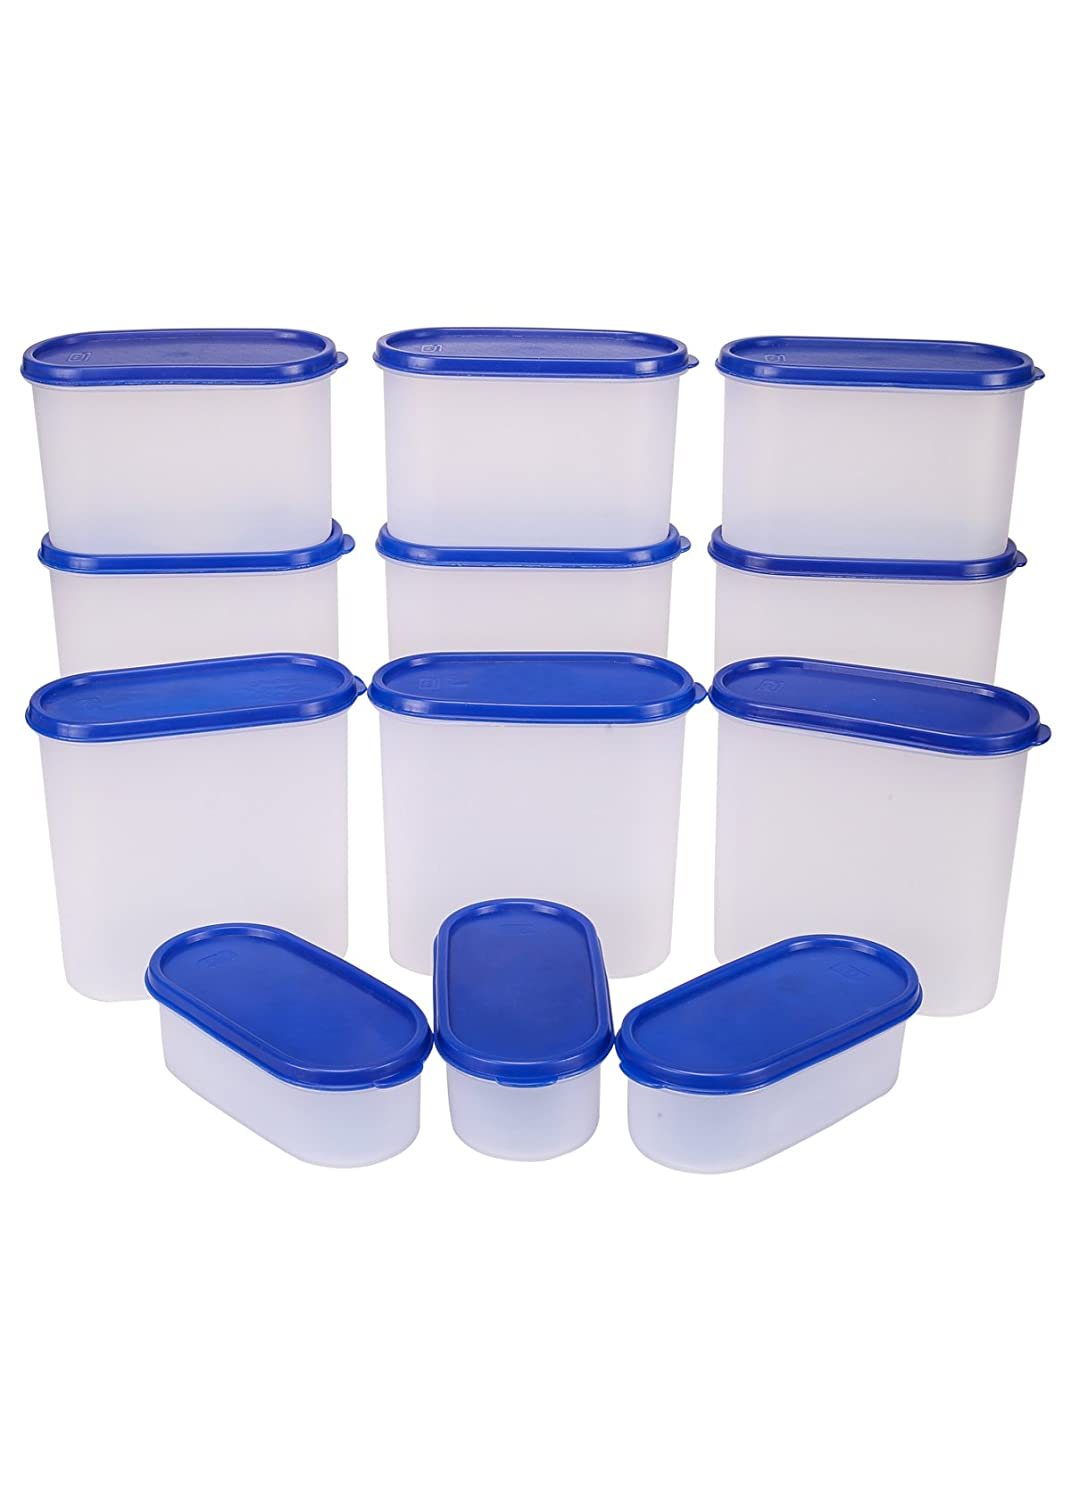 TallBoy Mahaware Plastic Modular Oval Container Set